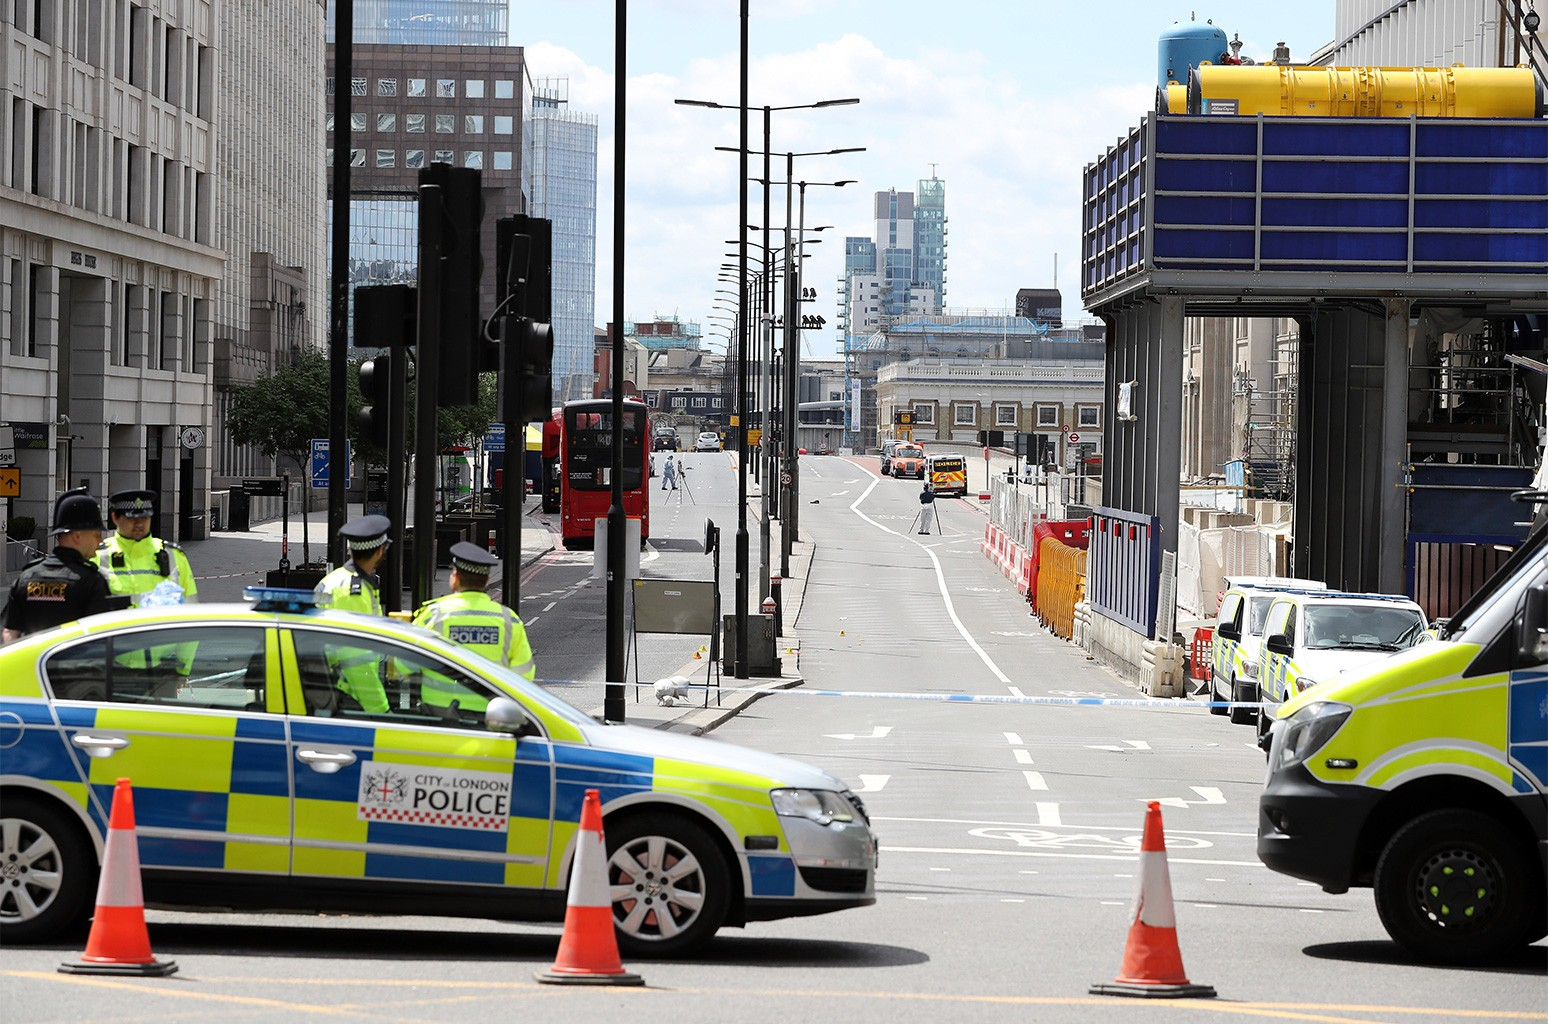 Police operate a cordon on the North side of London Bridge as forensic officers work after last night's terrorist attack on June 4, 2017 in London, England.